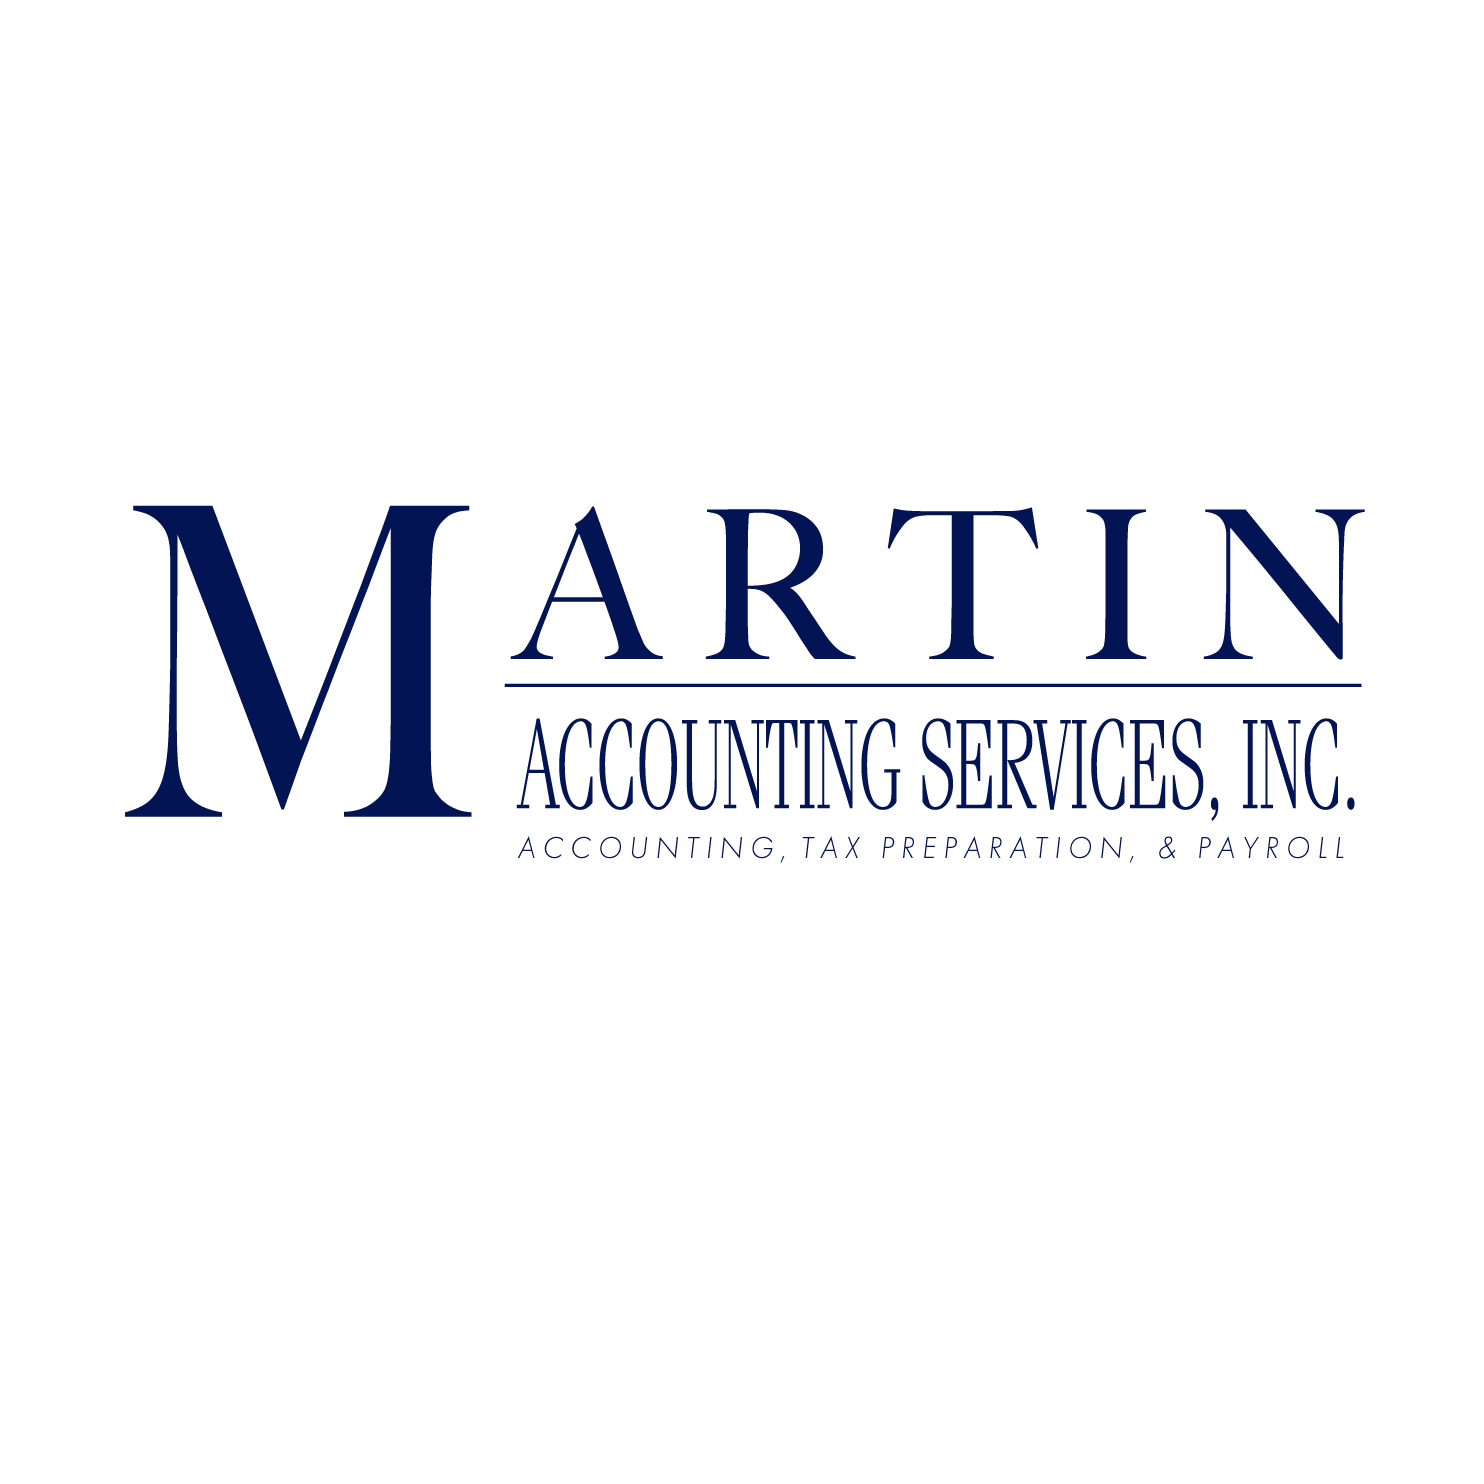 Martin Accounting Services, Inc. - St. louis, MO 63143 - (314)597-6665 | ShowMeLocal.com